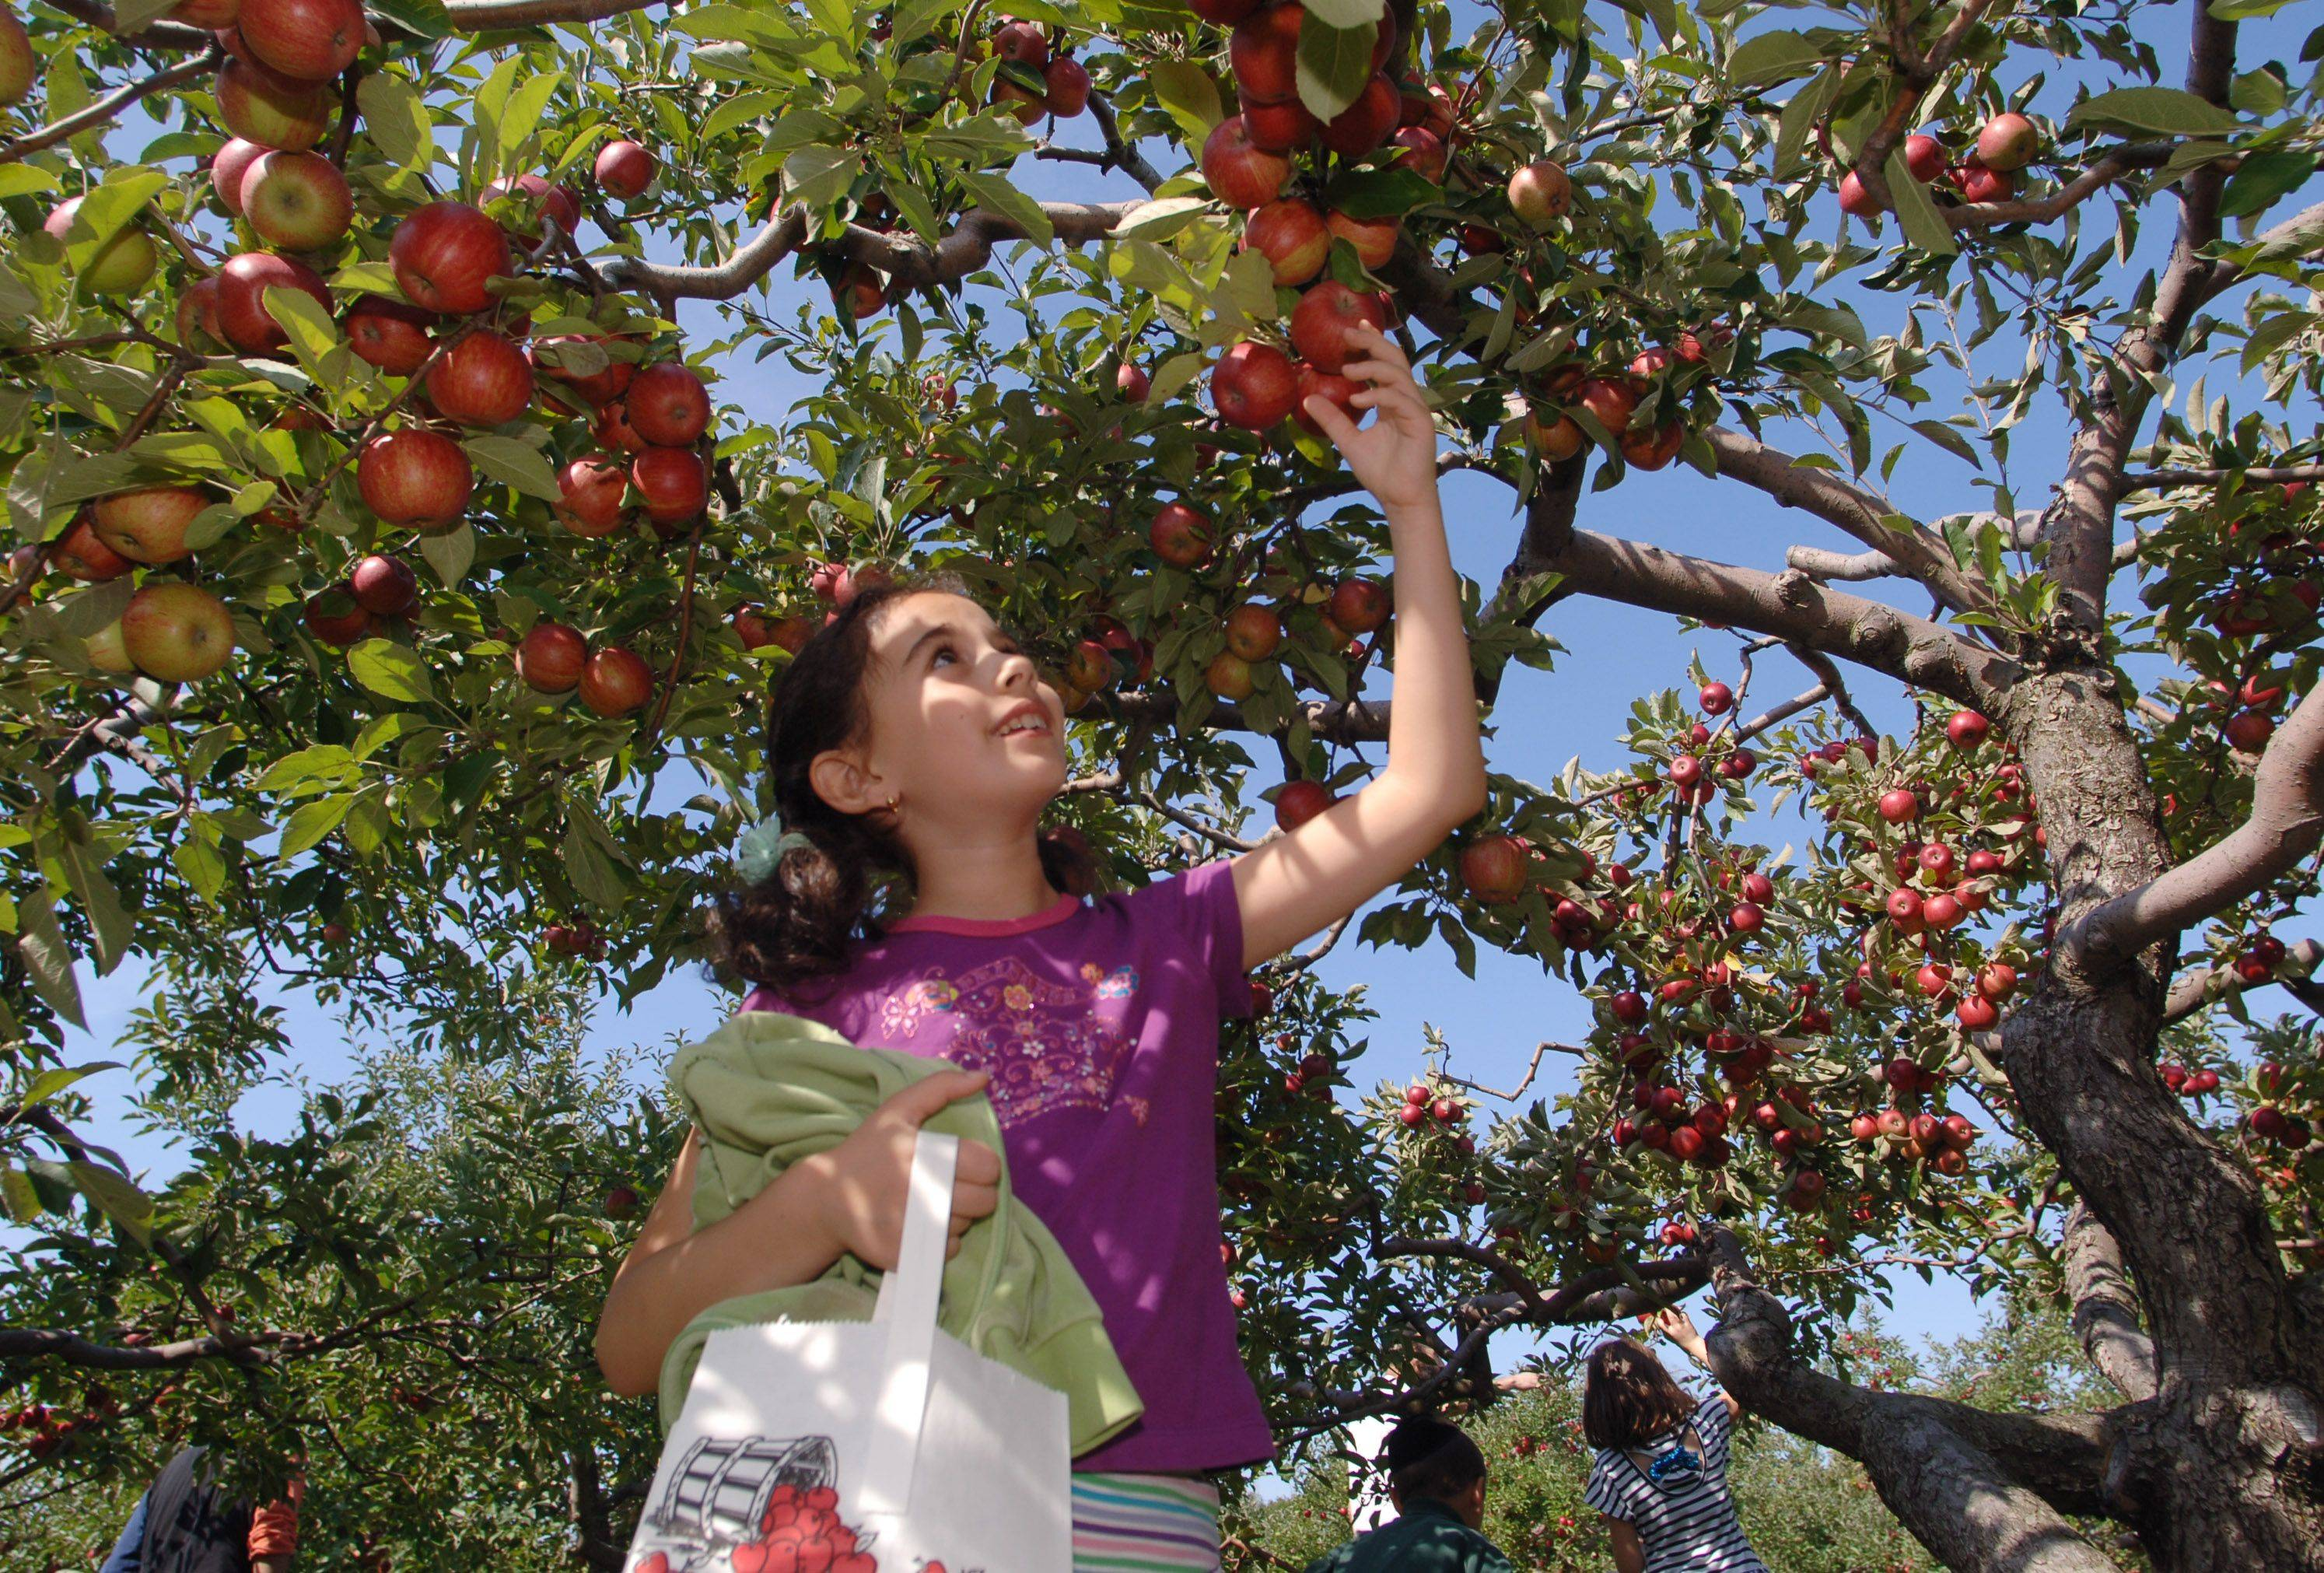 Mia Grossman, 8 of Buffalo Grove, loves picking the apples and is looking forward to eating them with honey on Rosh Hashana.